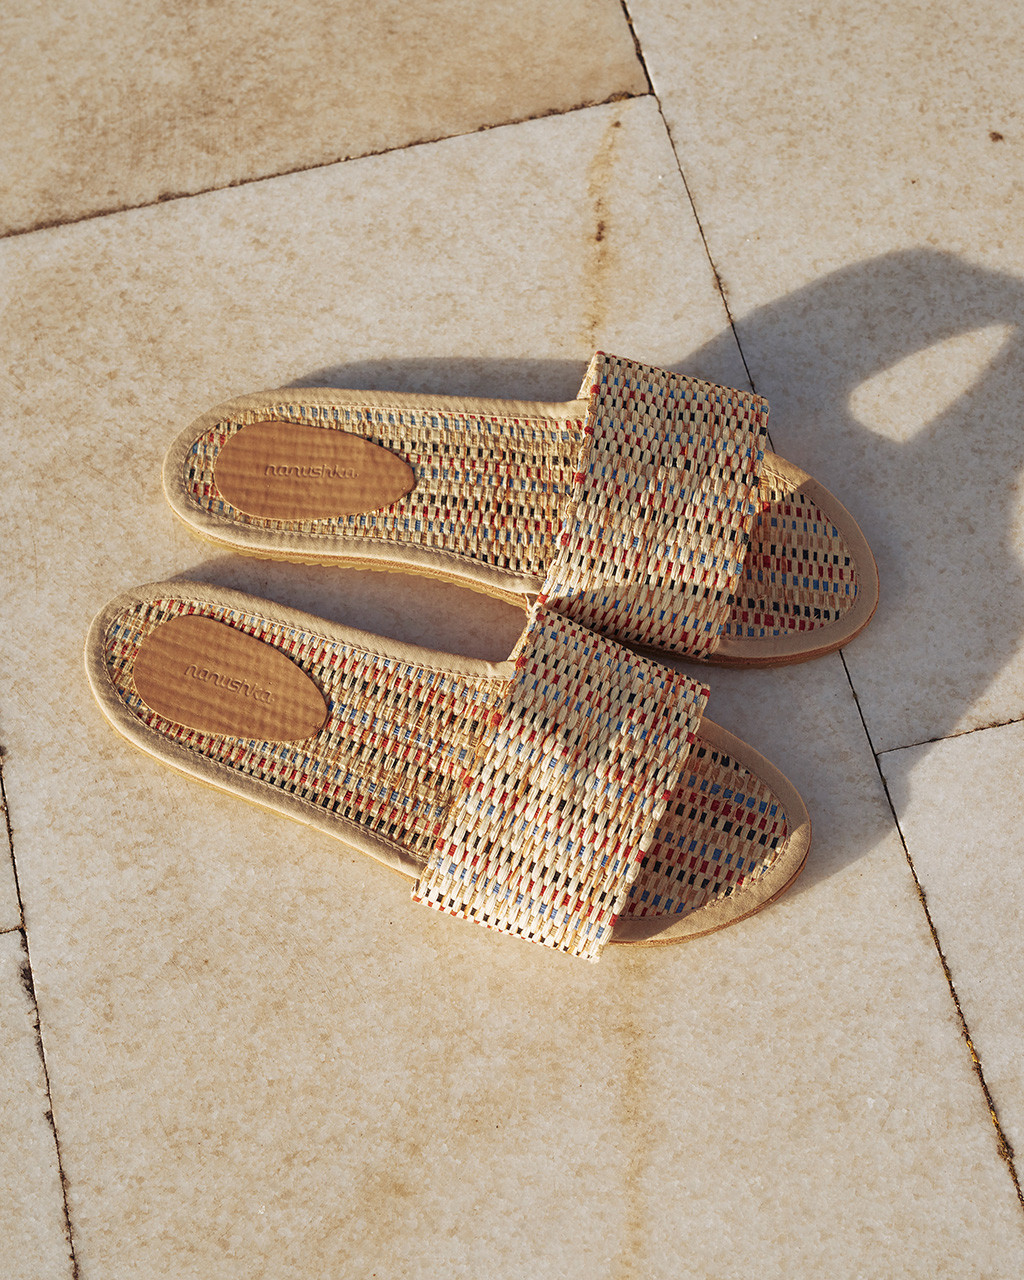 Nanushka | Flat slides in color straw with leather lining